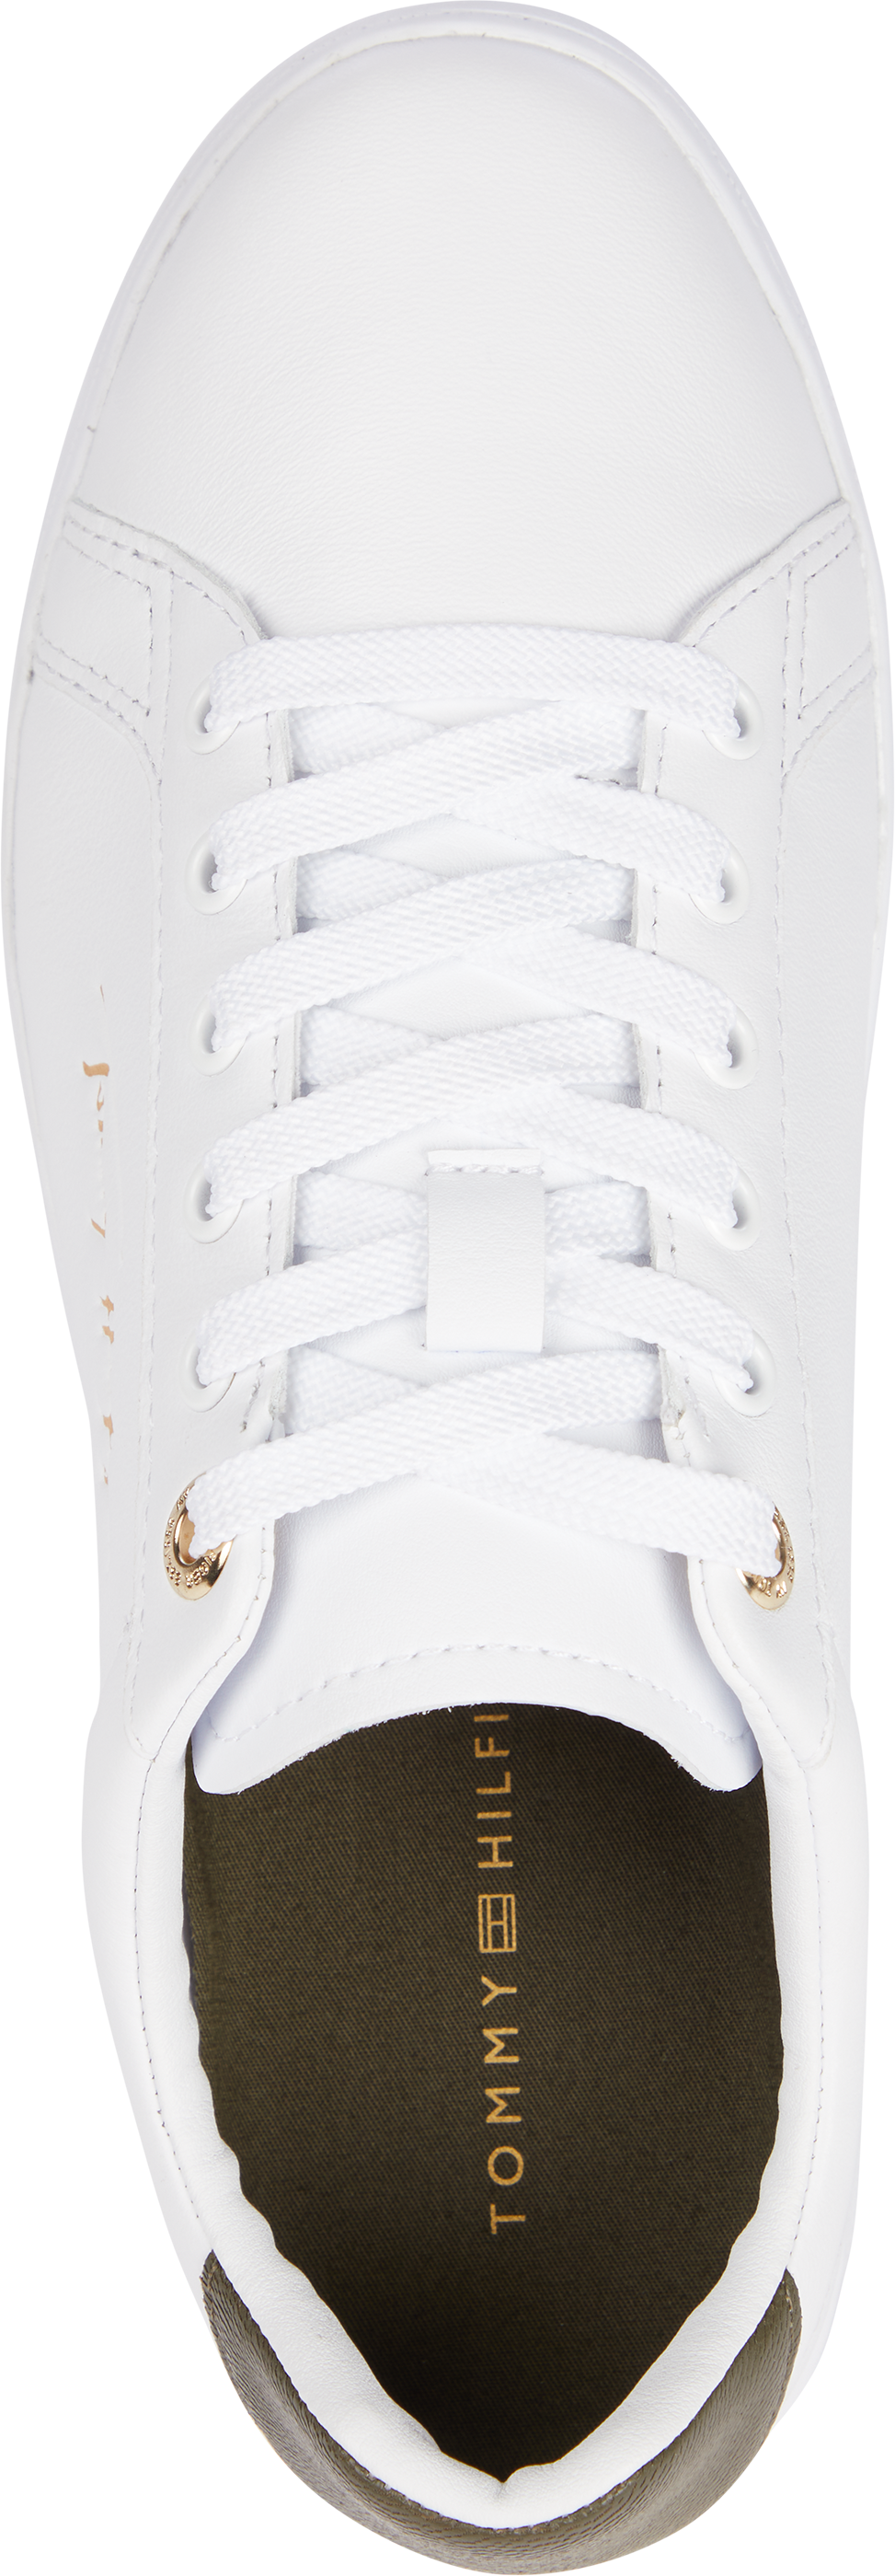 Tommy Hilfiger Signature Court sneakers, white/army green, 41